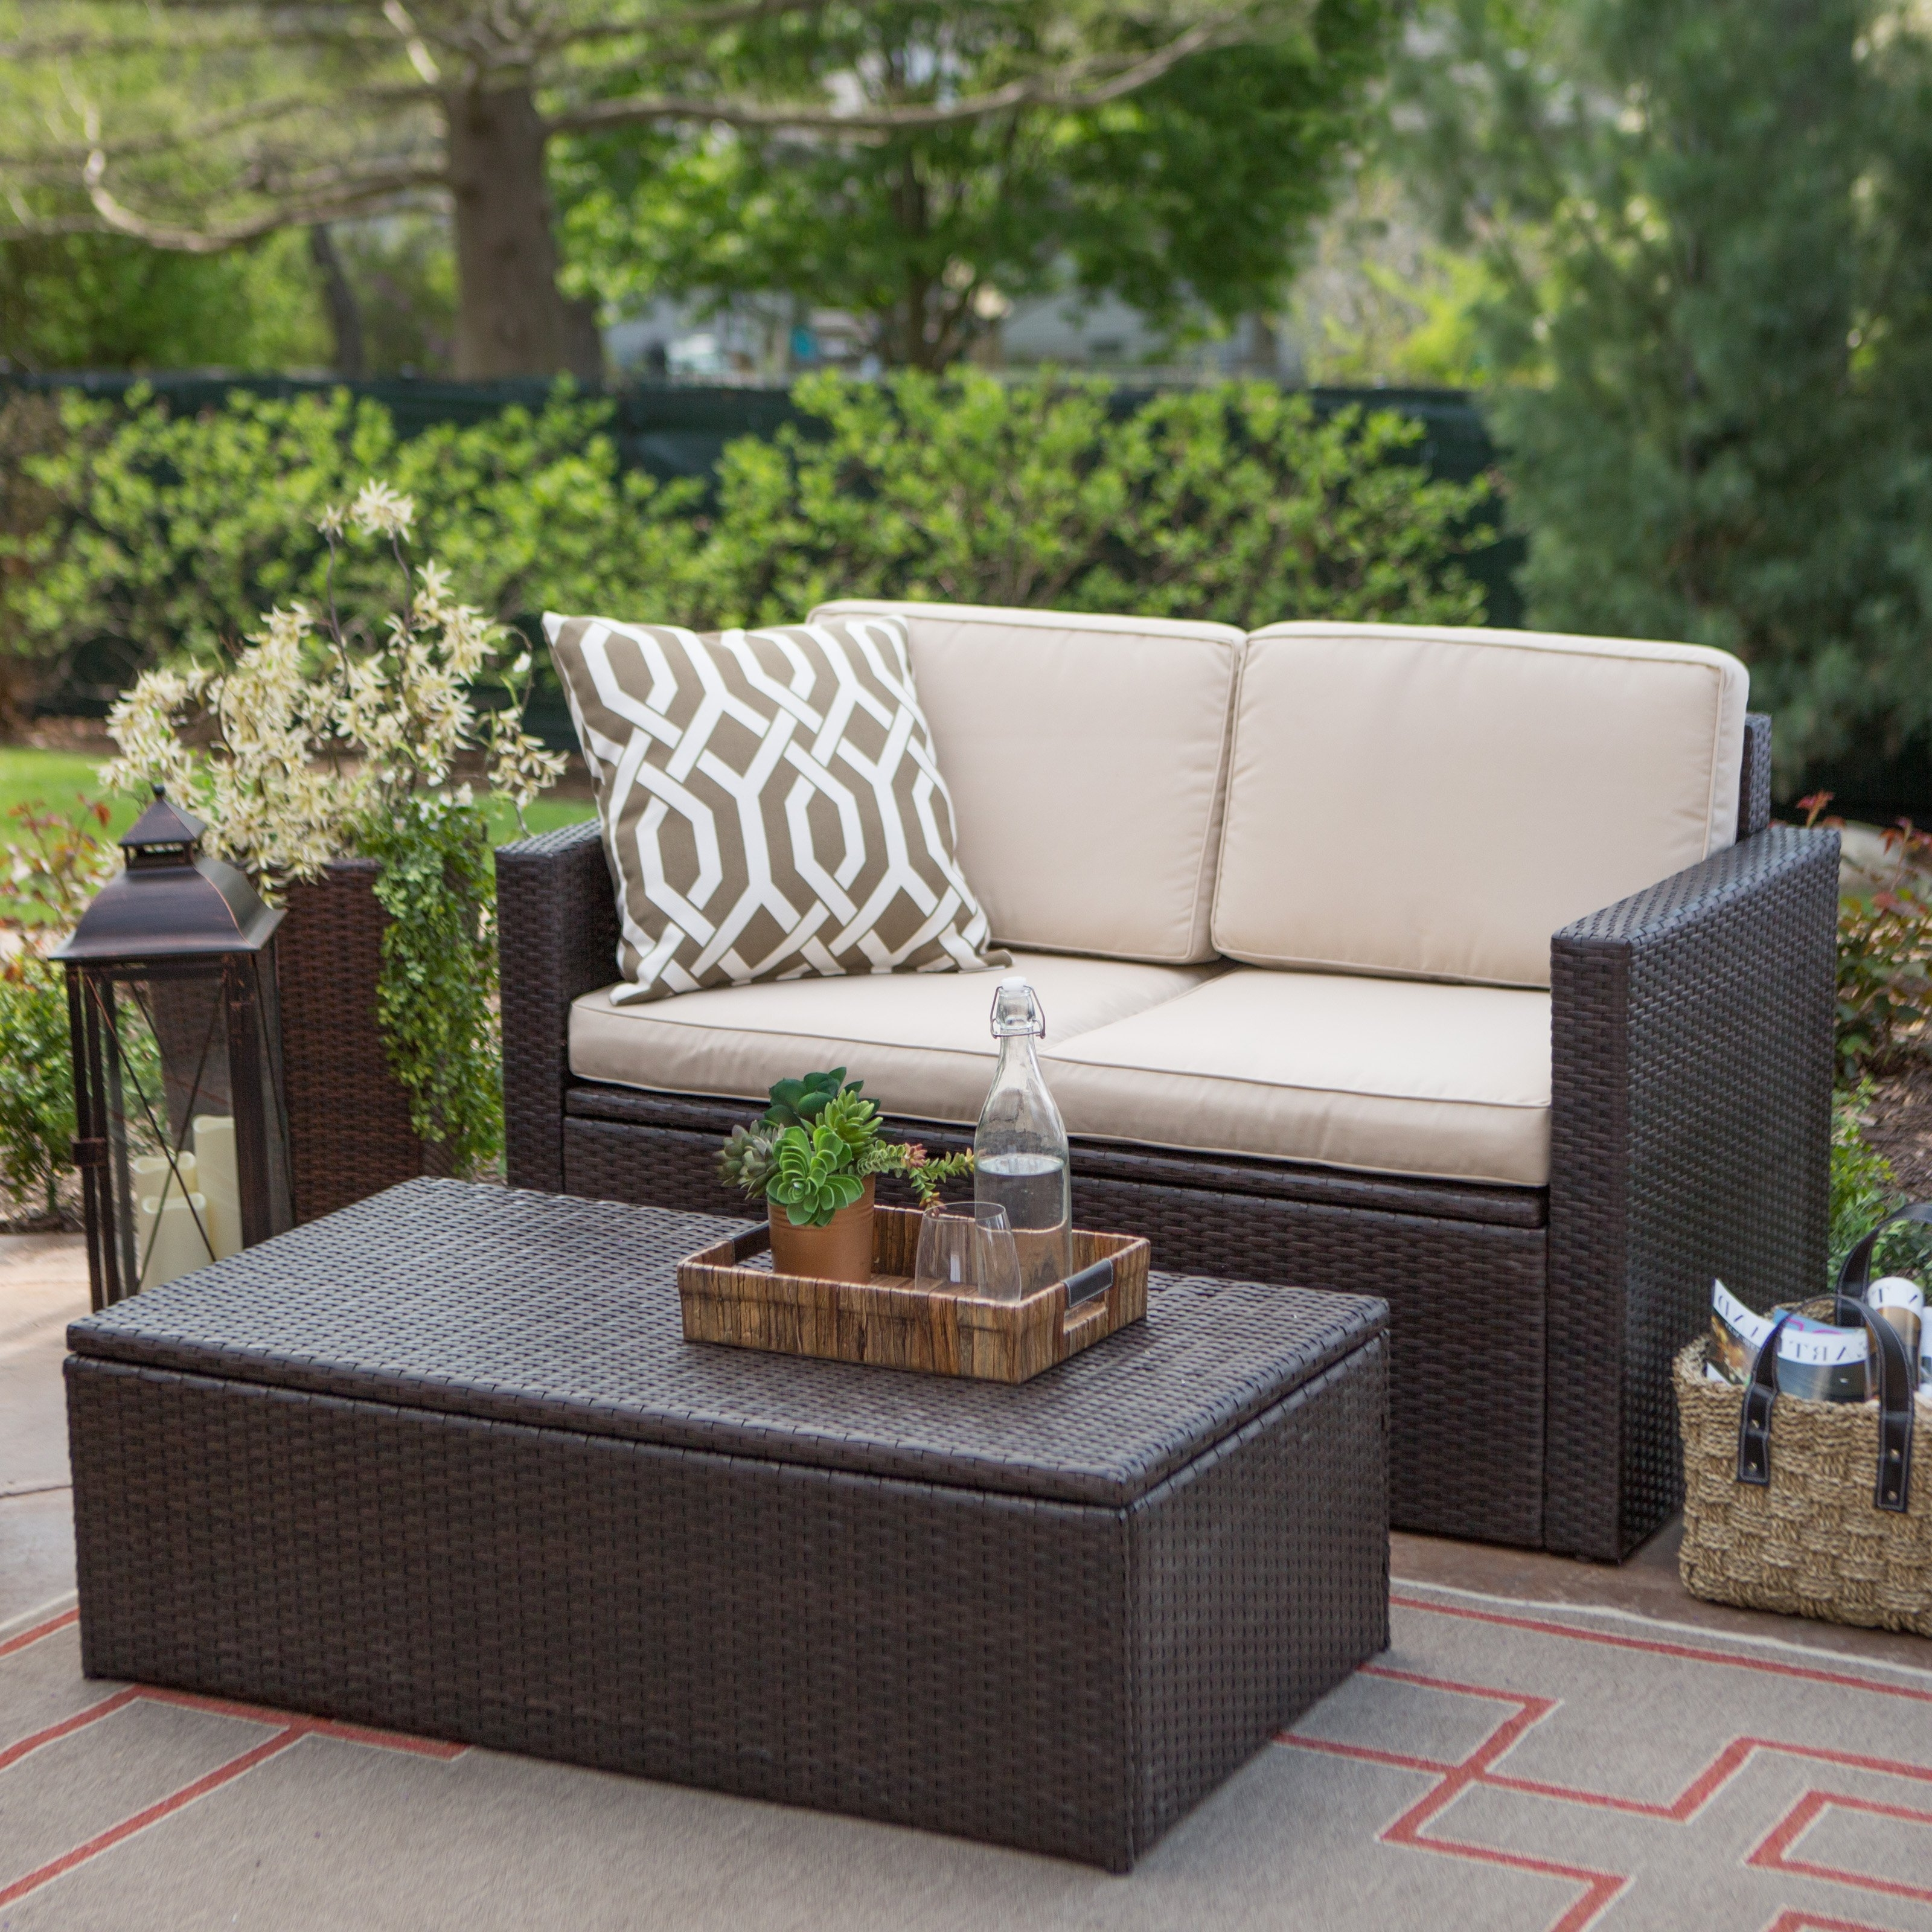 Most Recently Released Patio Conversation Sets With Storage With Coral Coast Berea Wicker 2 Piece Storage Conversation Set (View 7 of 15)